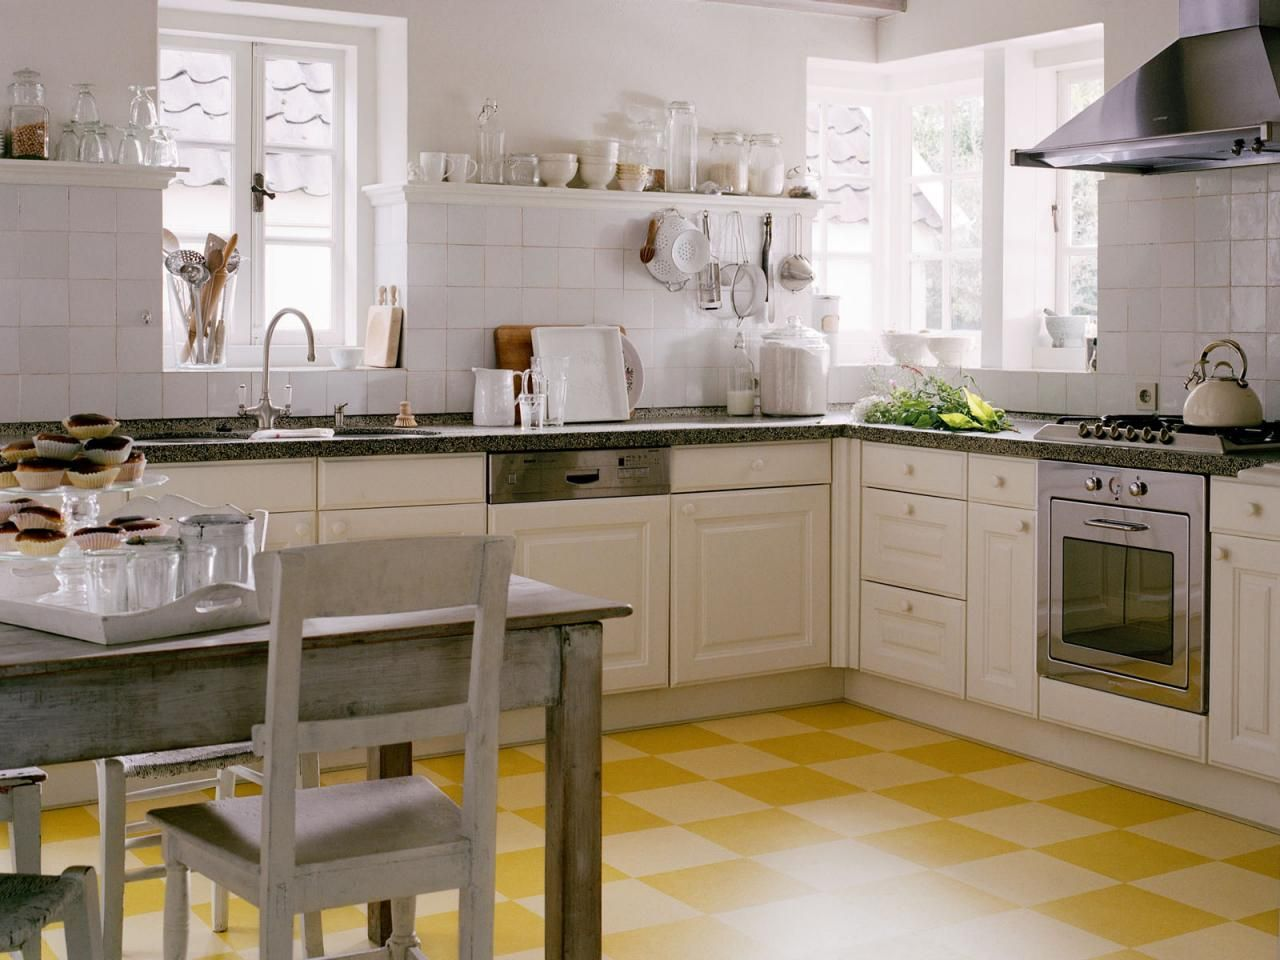 Modern Kitchen In Old House The Best Flooring Choices For Old House Kitchens Kitchen Modern